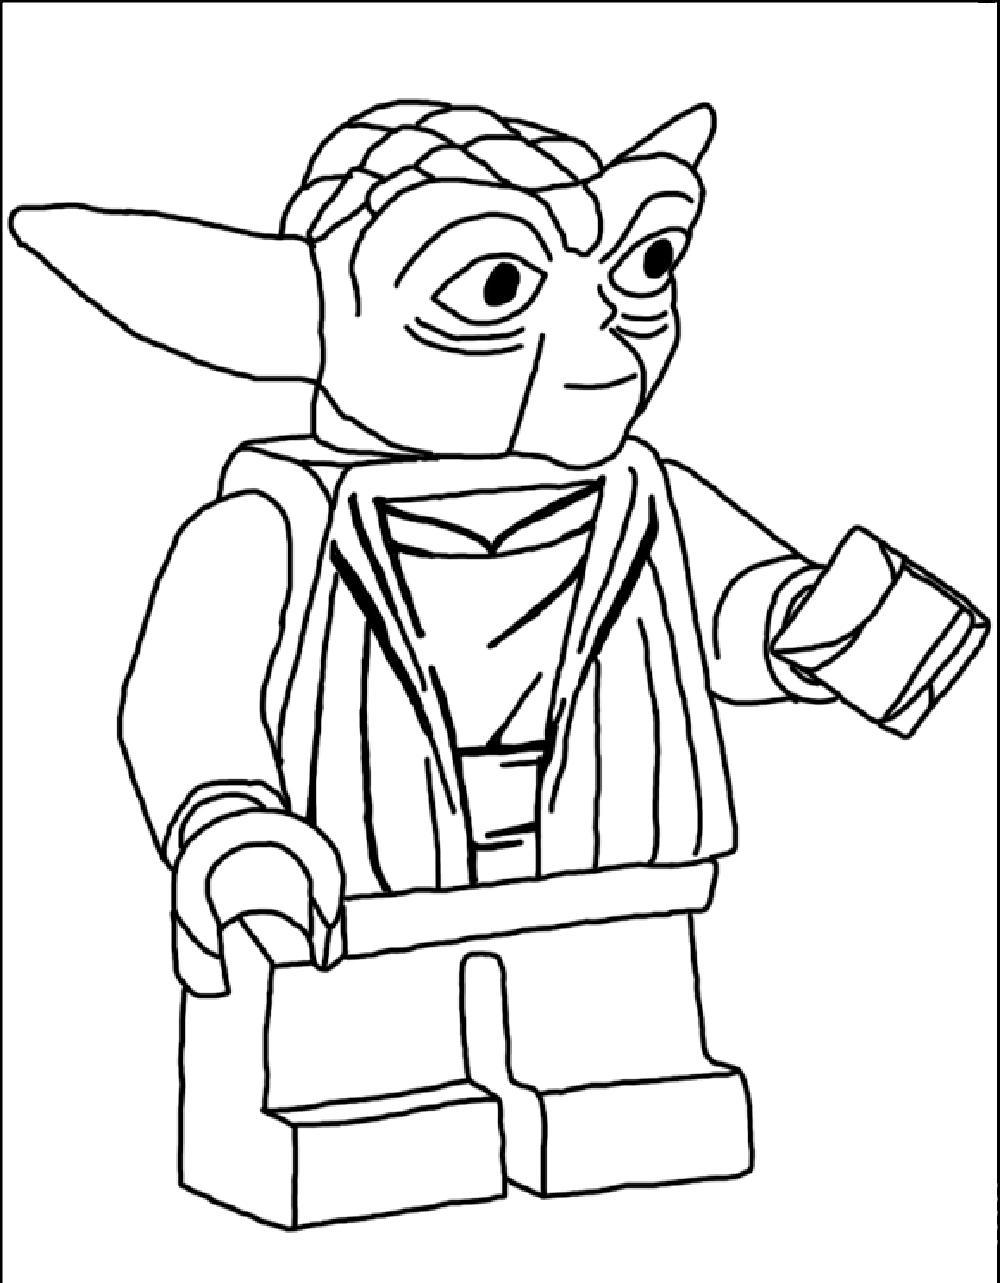 star wars lego colouring create your own lego coloring pages for kids lego star wars colouring